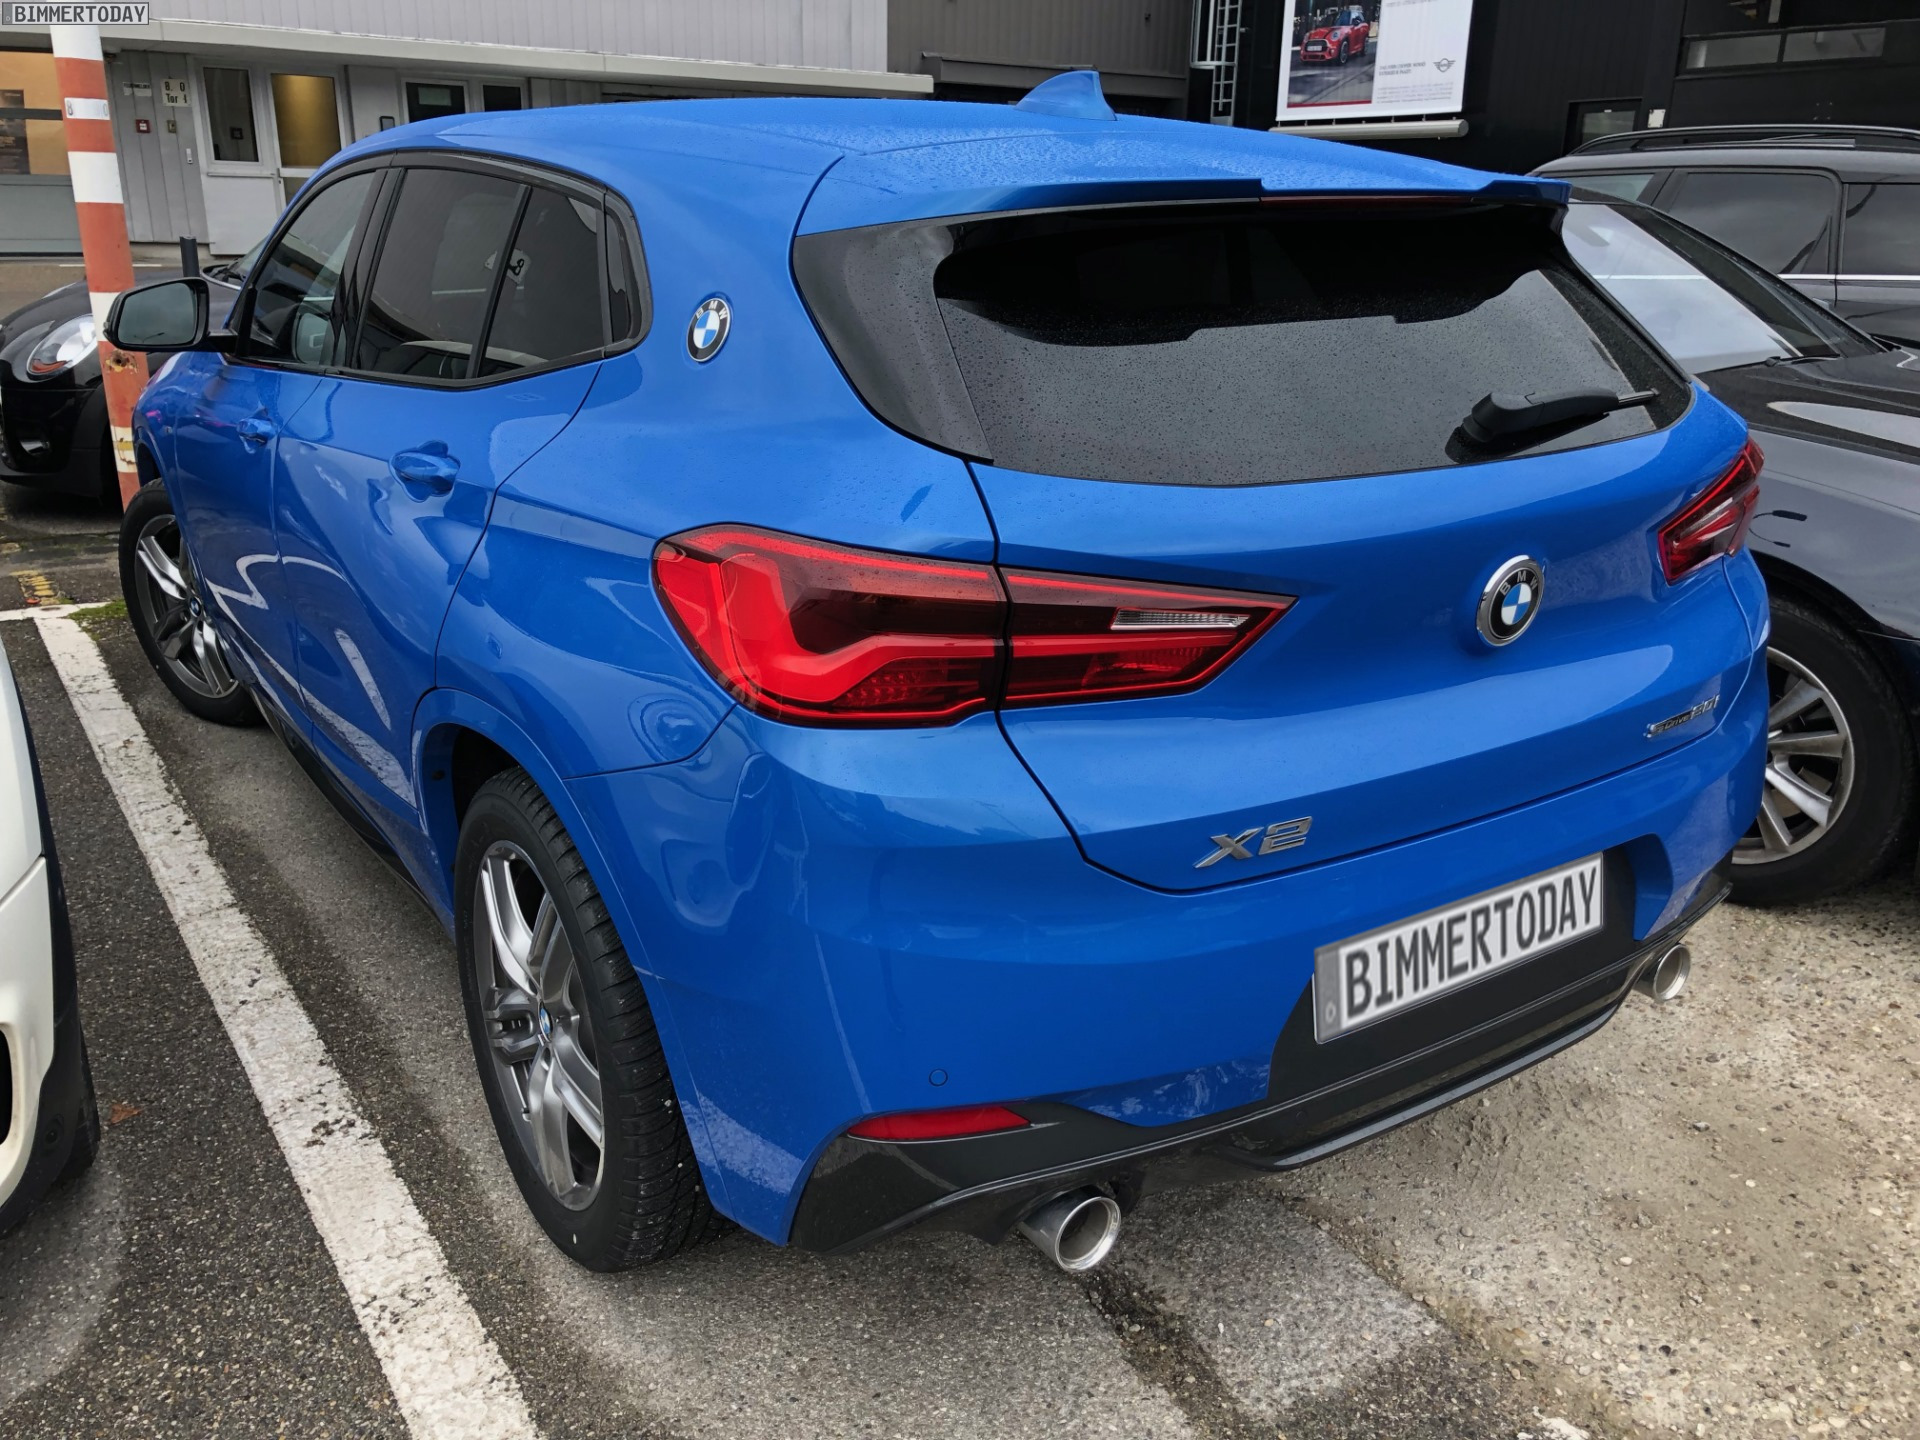 Bmw X1 Vs X2 >> Live Photos of the BMW X2 spotted in Germany